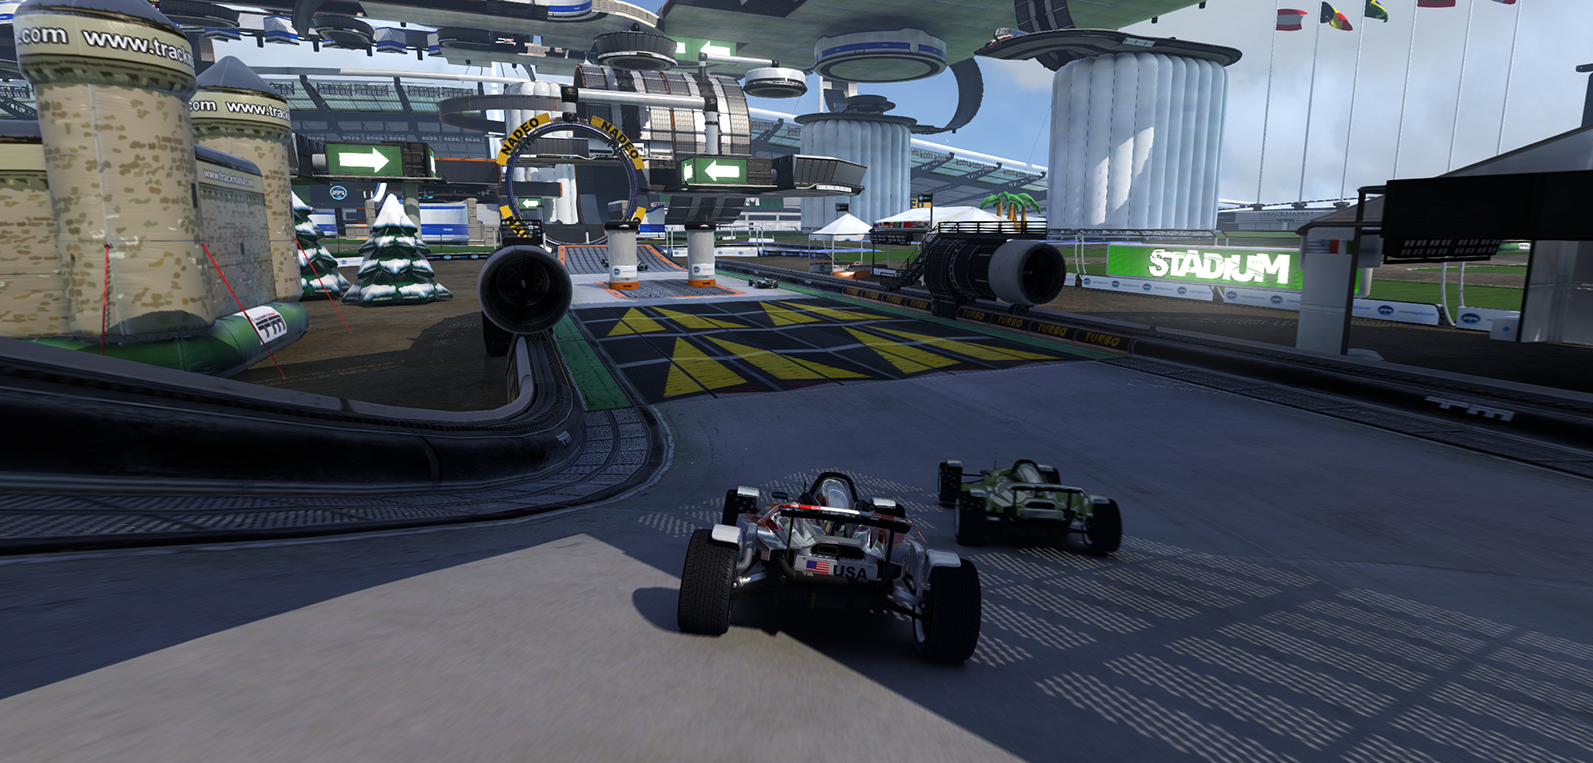 TrackMania Stars Competition Premiership 20